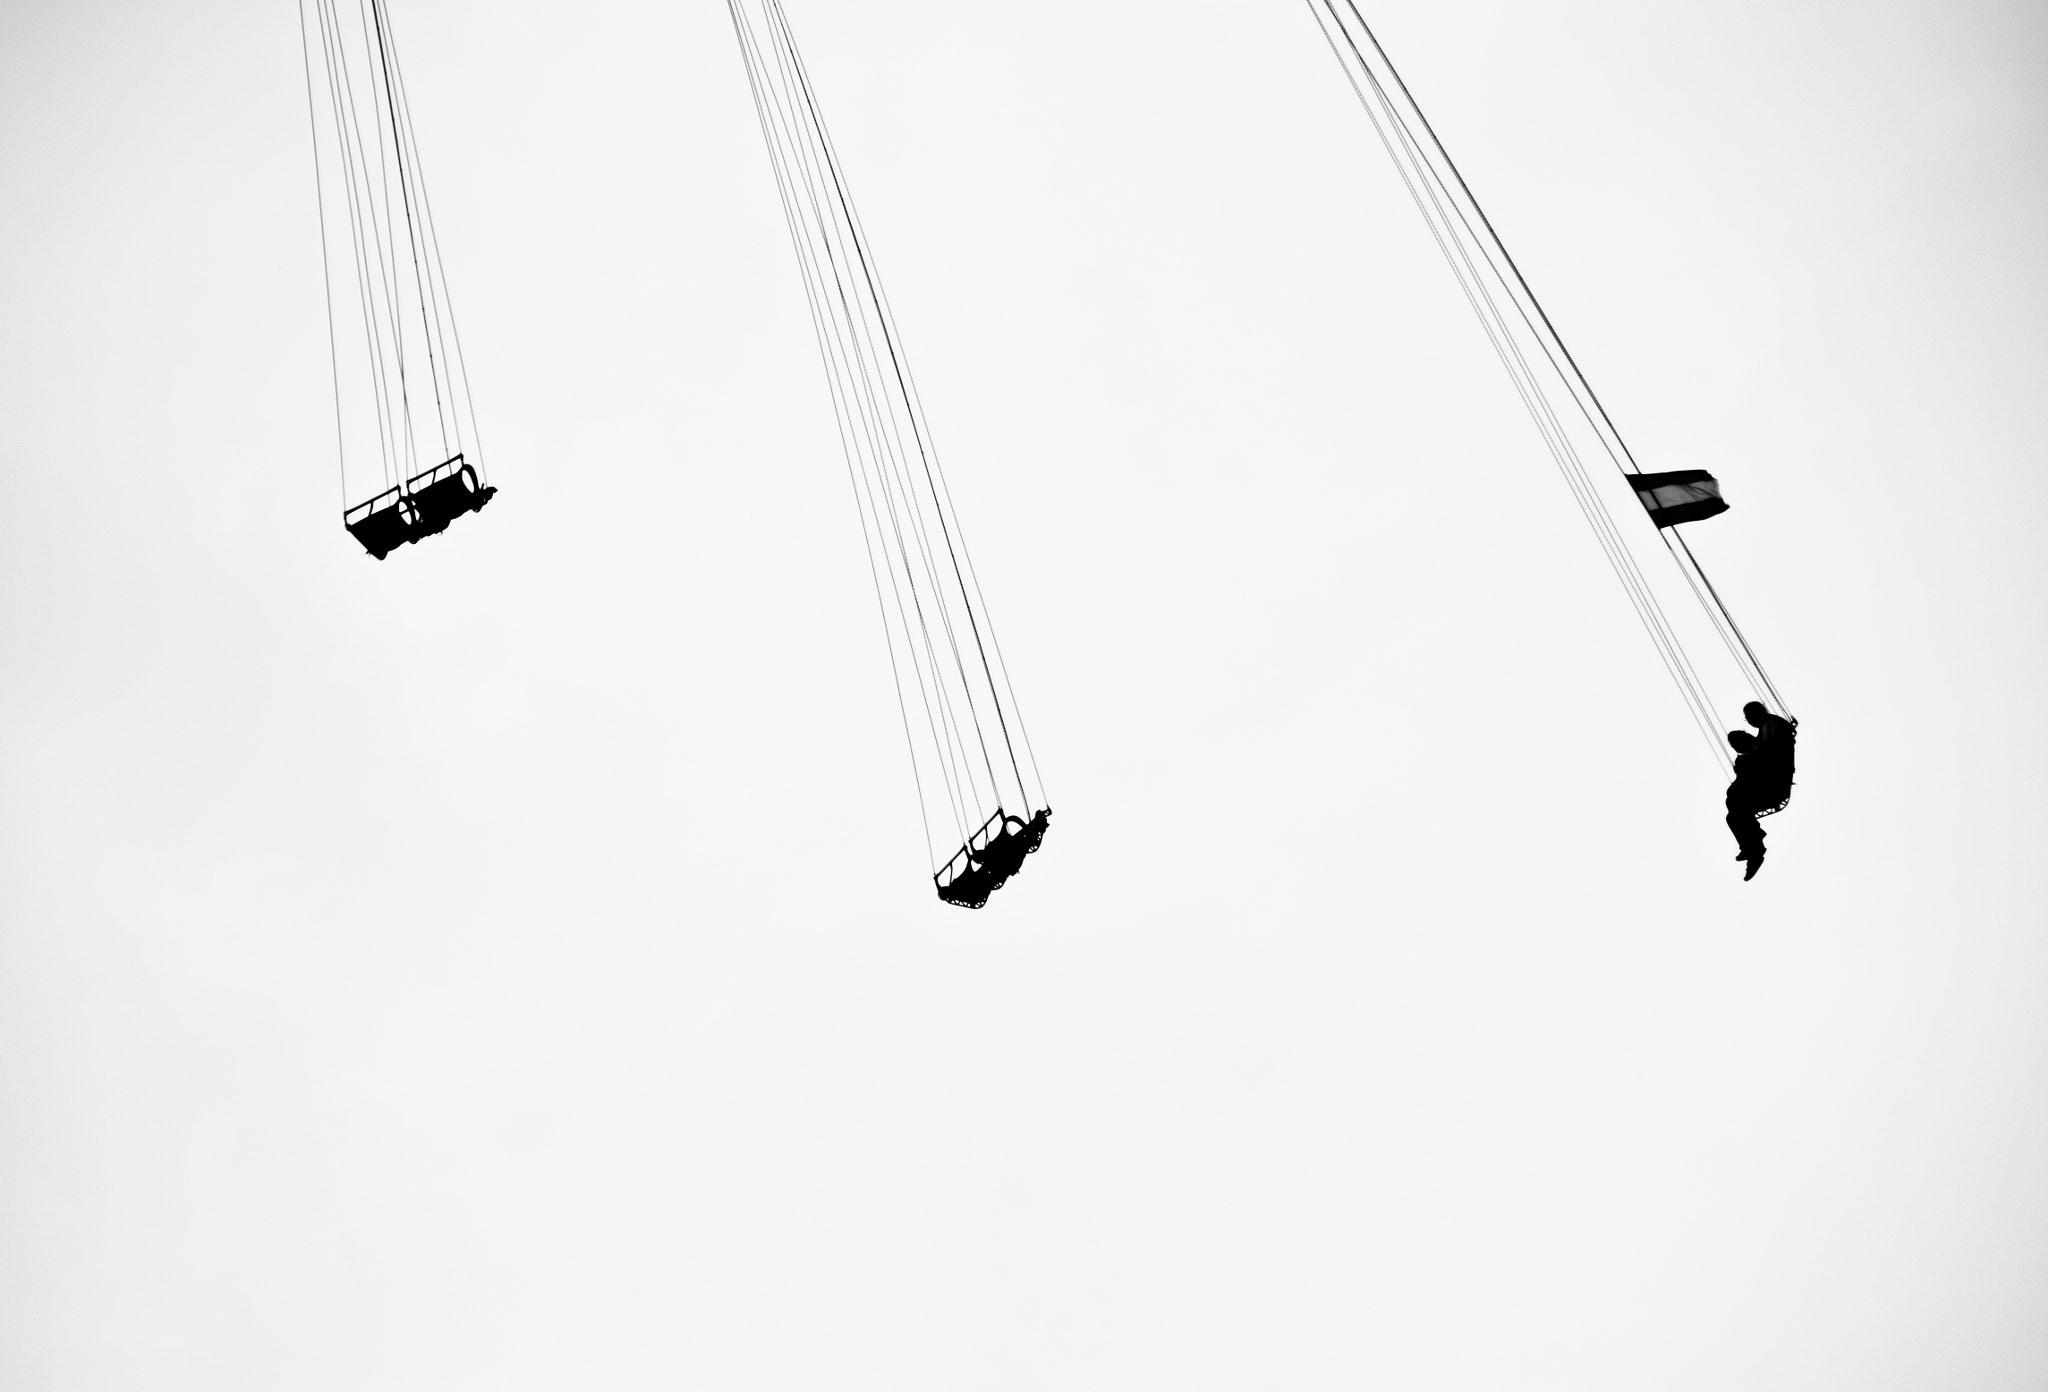 Photograph Flying men by César Asensio on 500px